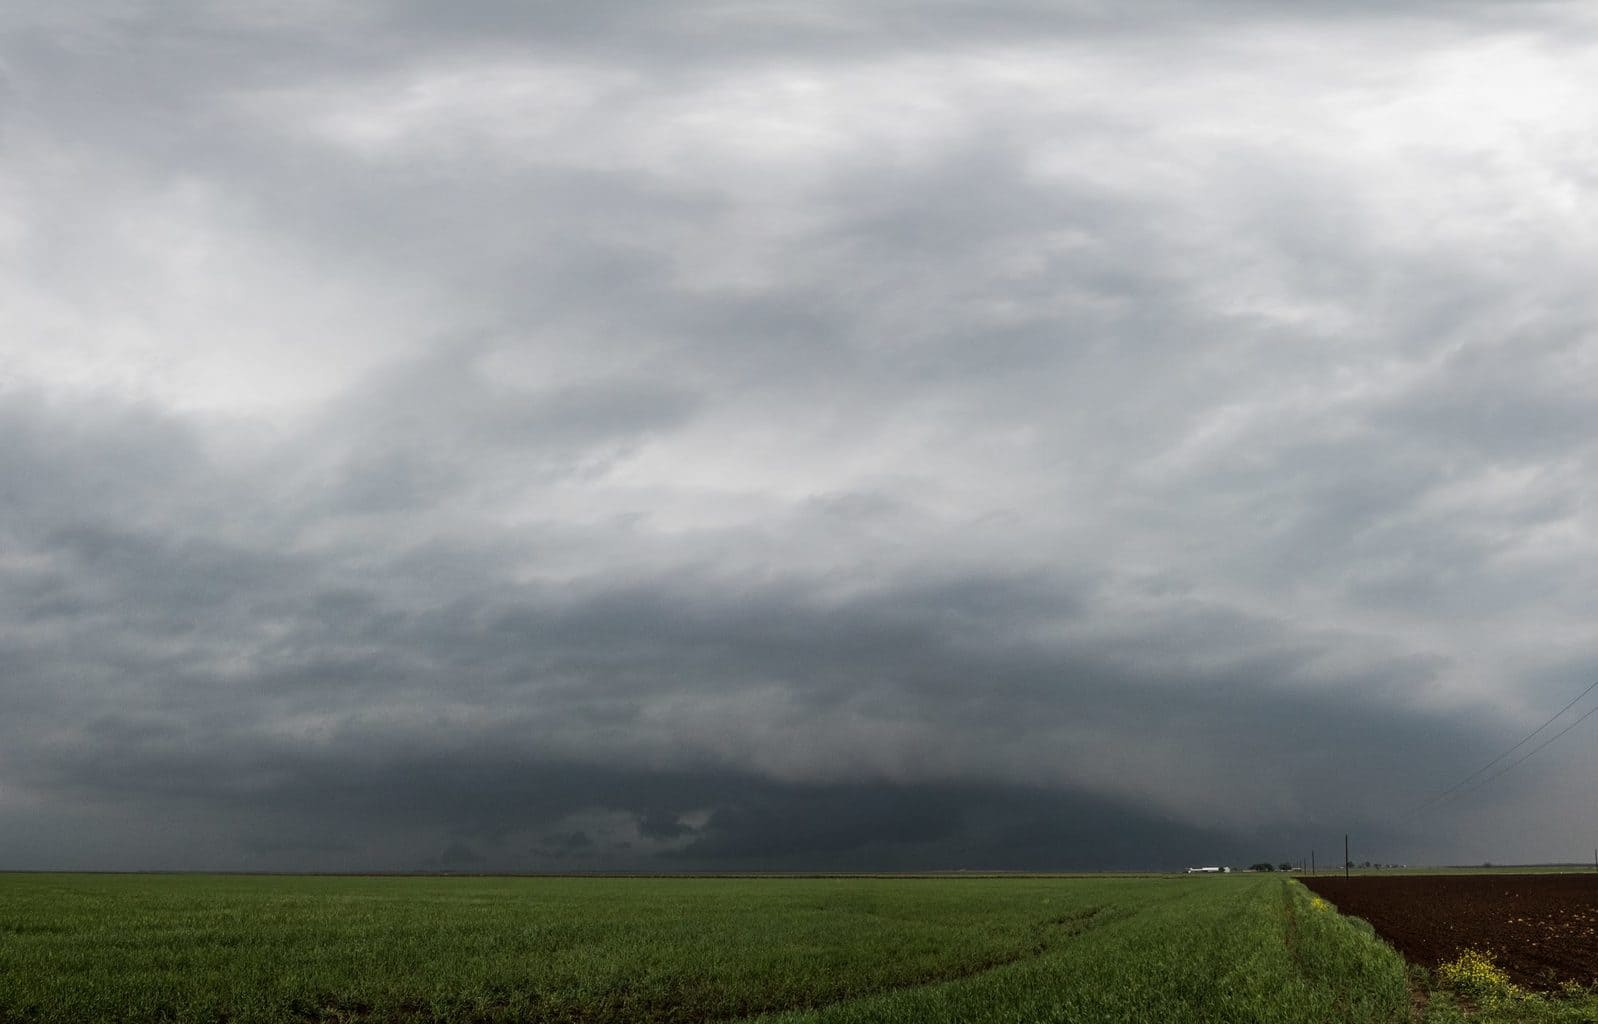 Shelfie from Tuesday. RIP to the chasers we lost.q